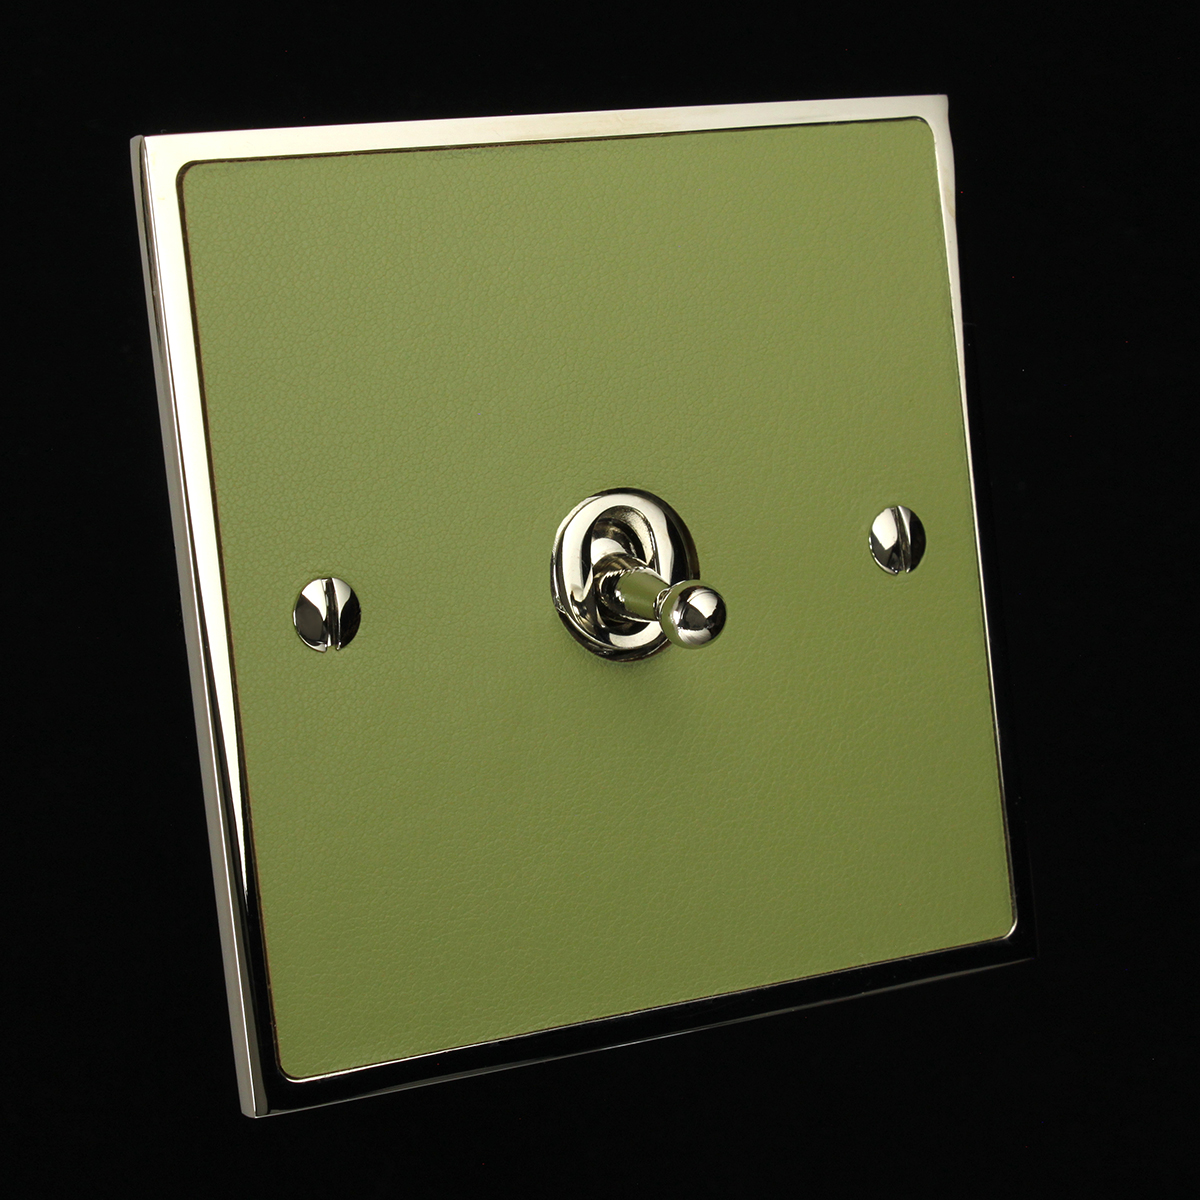 12 polished nickel + peagreen leatherette